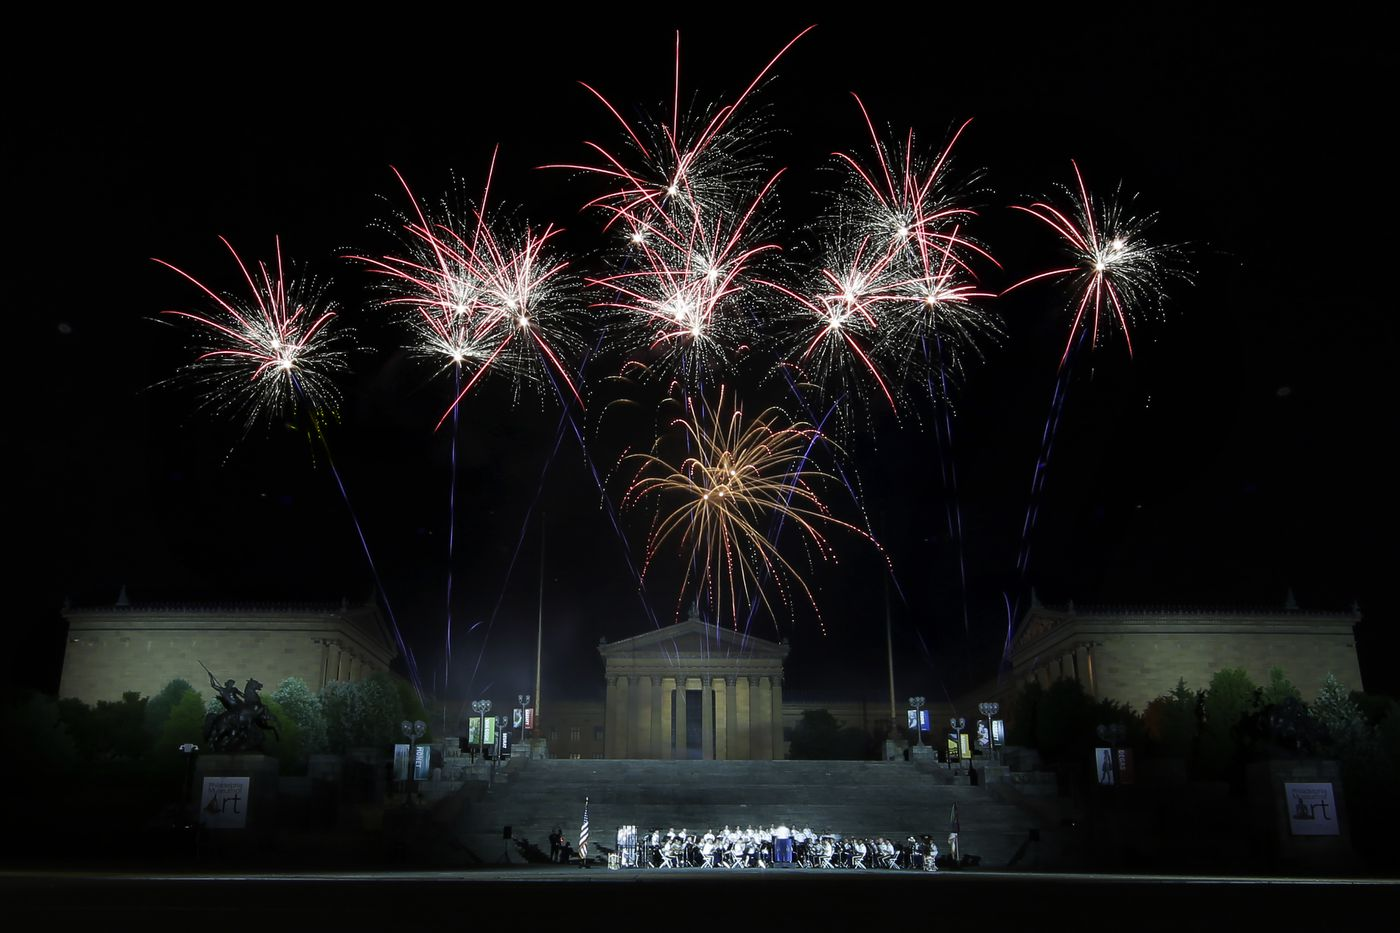 The US Army Band performs as the rockets red glare explode over the Art Museum during the Welcome America Fourth of July festivities in Phila., Pa. on July 4, 2019.